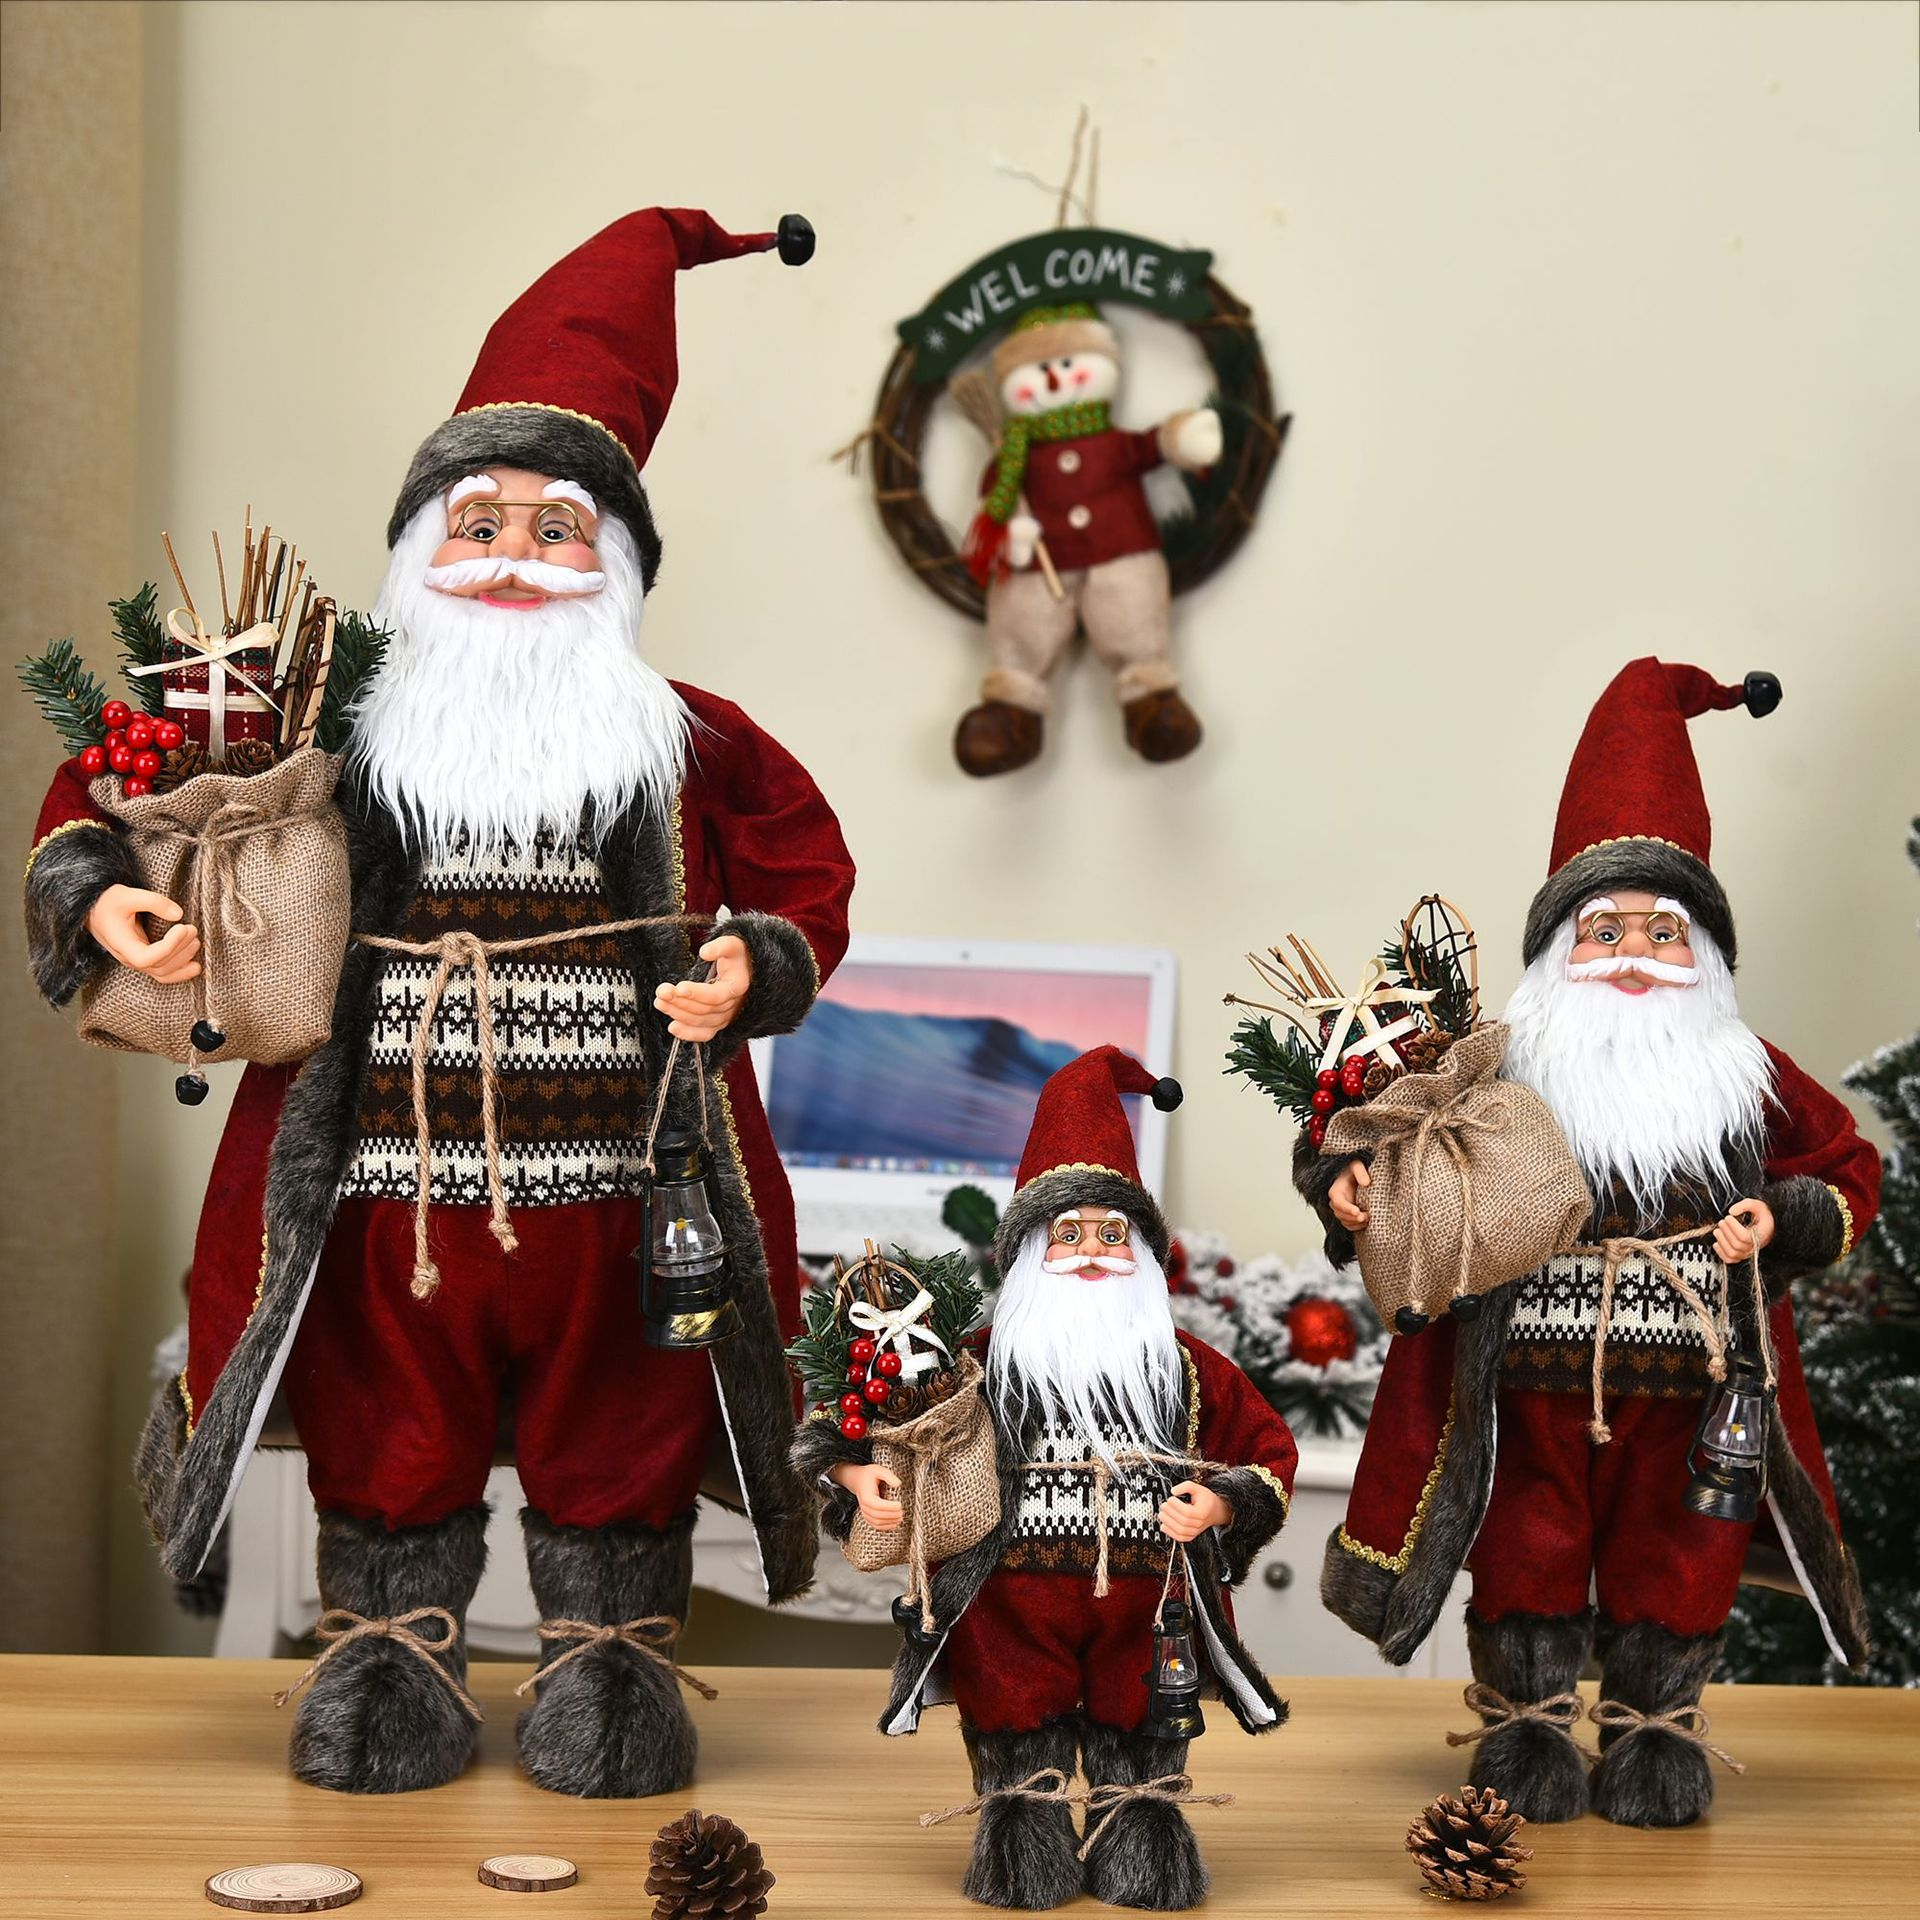 3PCS/set  Big Santa Claus Dolls Children Xmas Gift Christmas Tree Decorations for Home 2022 New Year Party